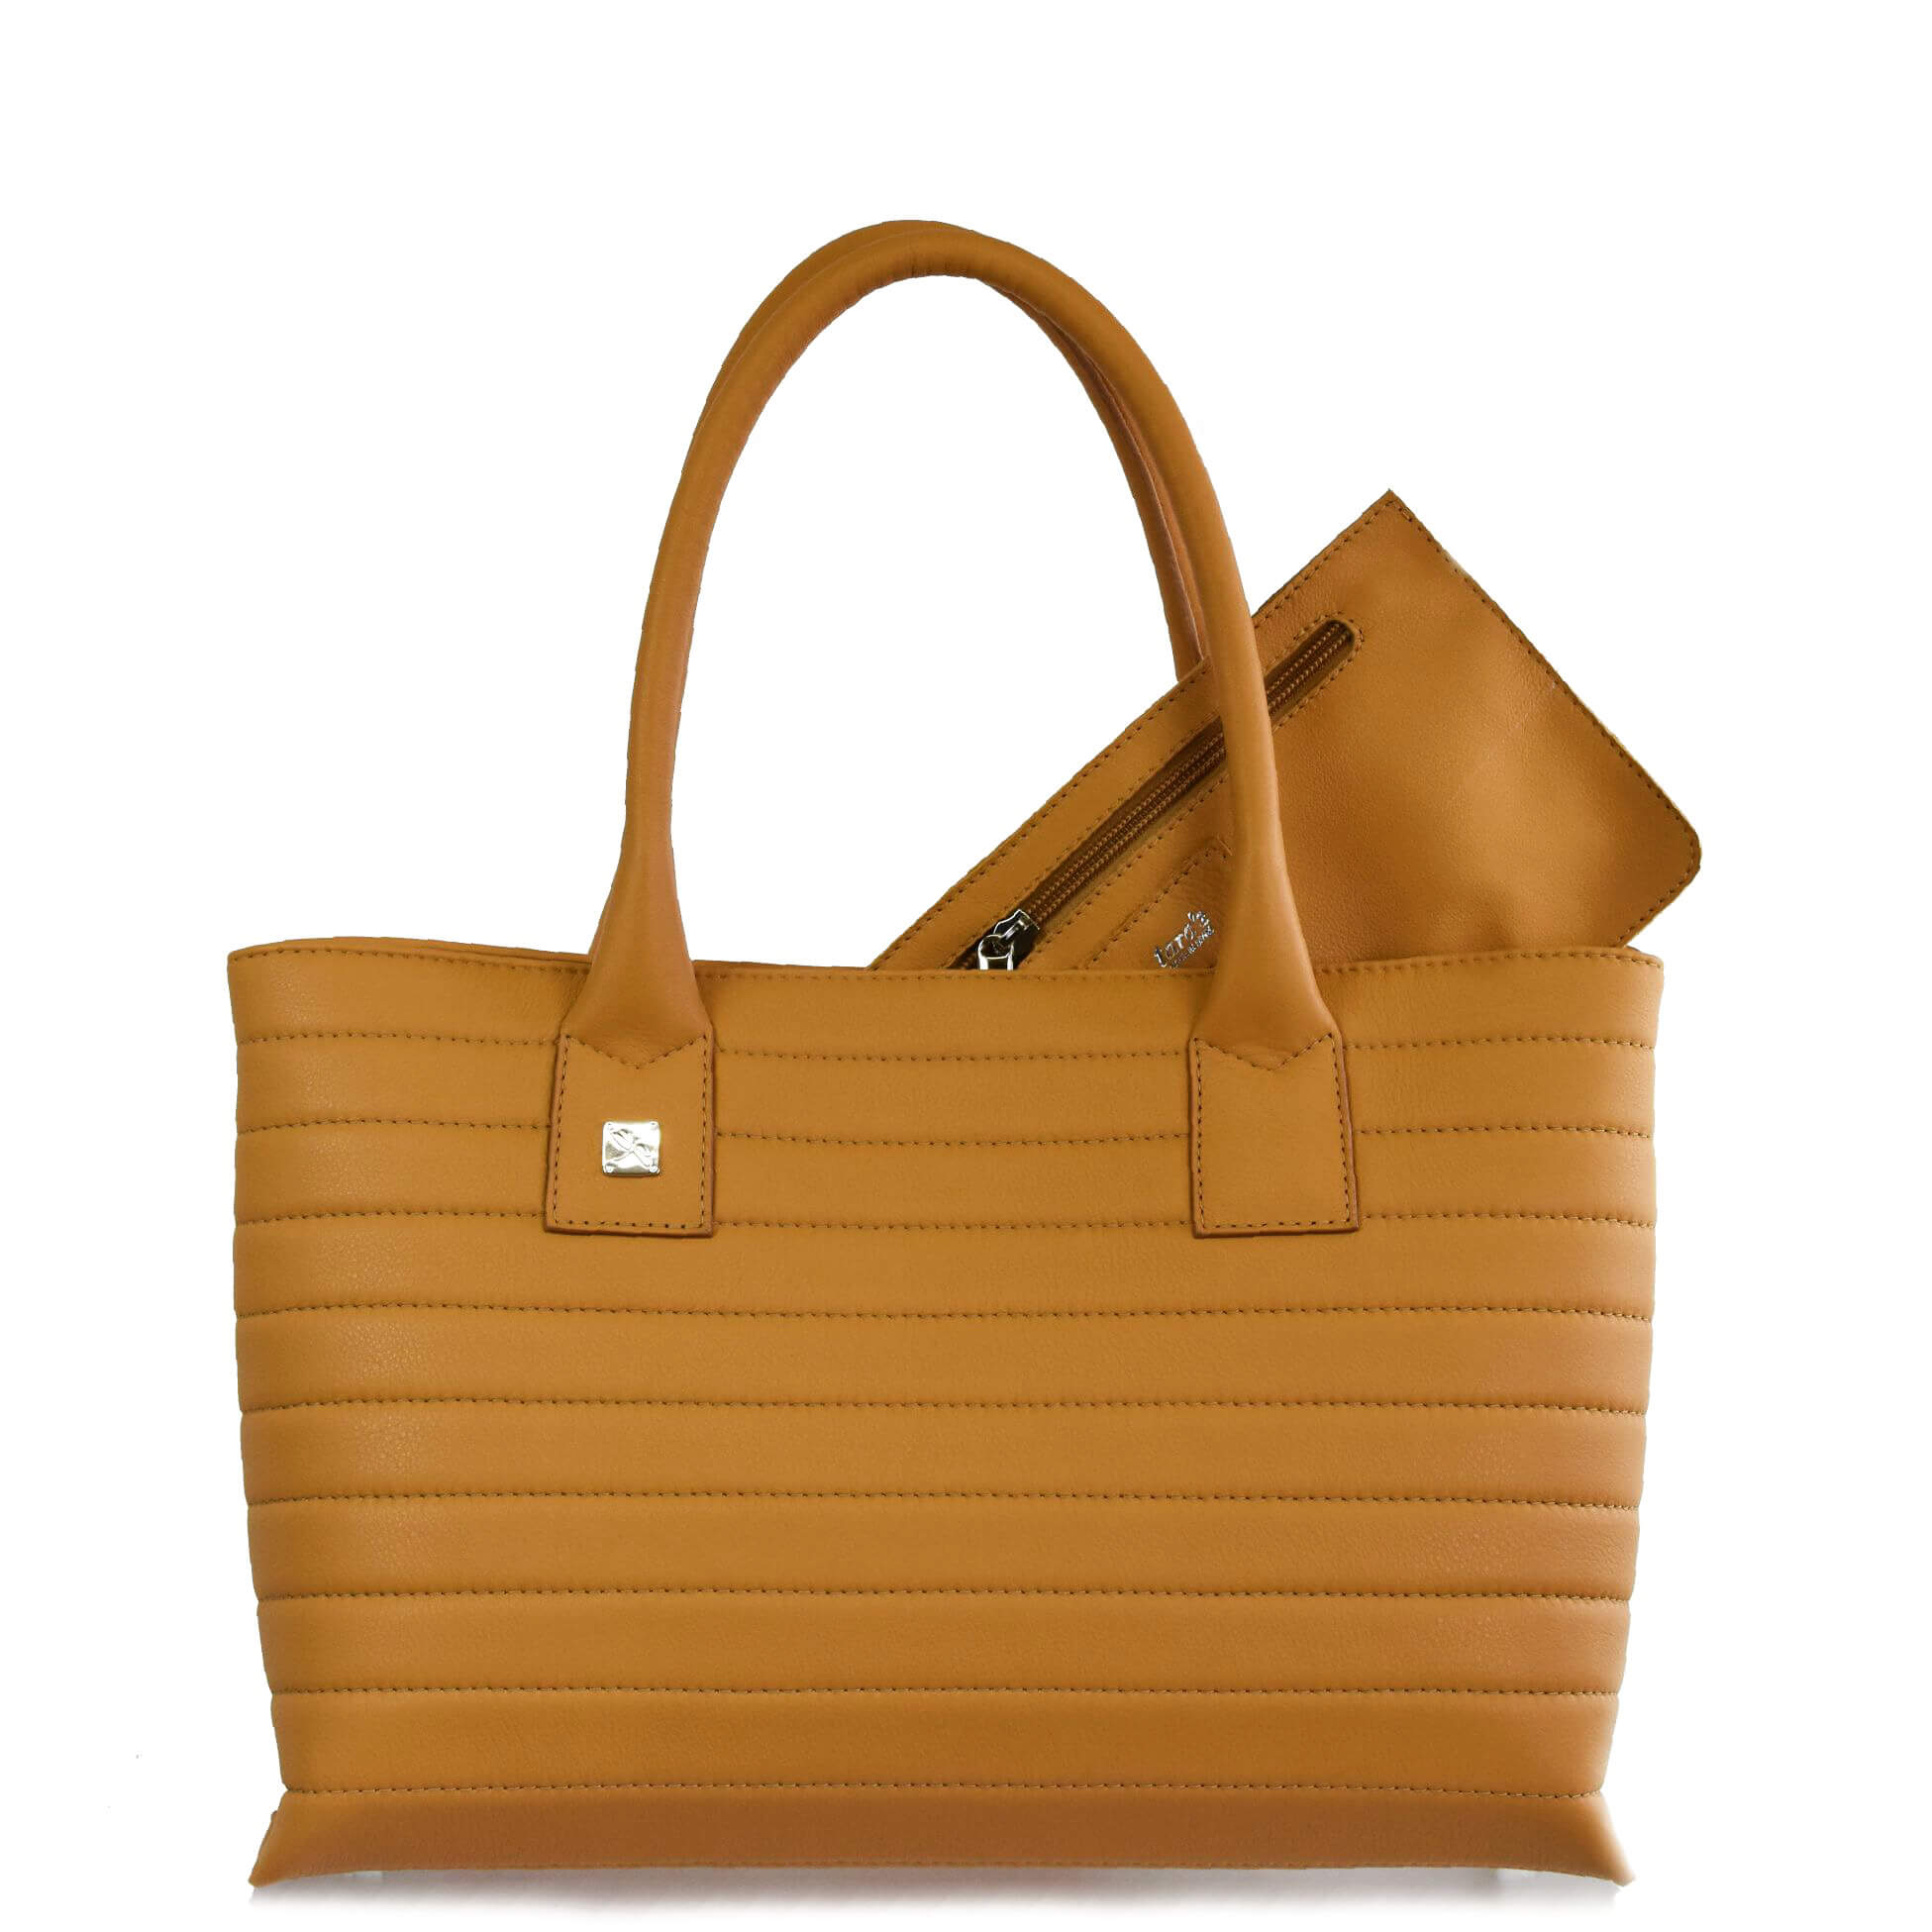 Camel Tote Leather Handbag. Natalia S